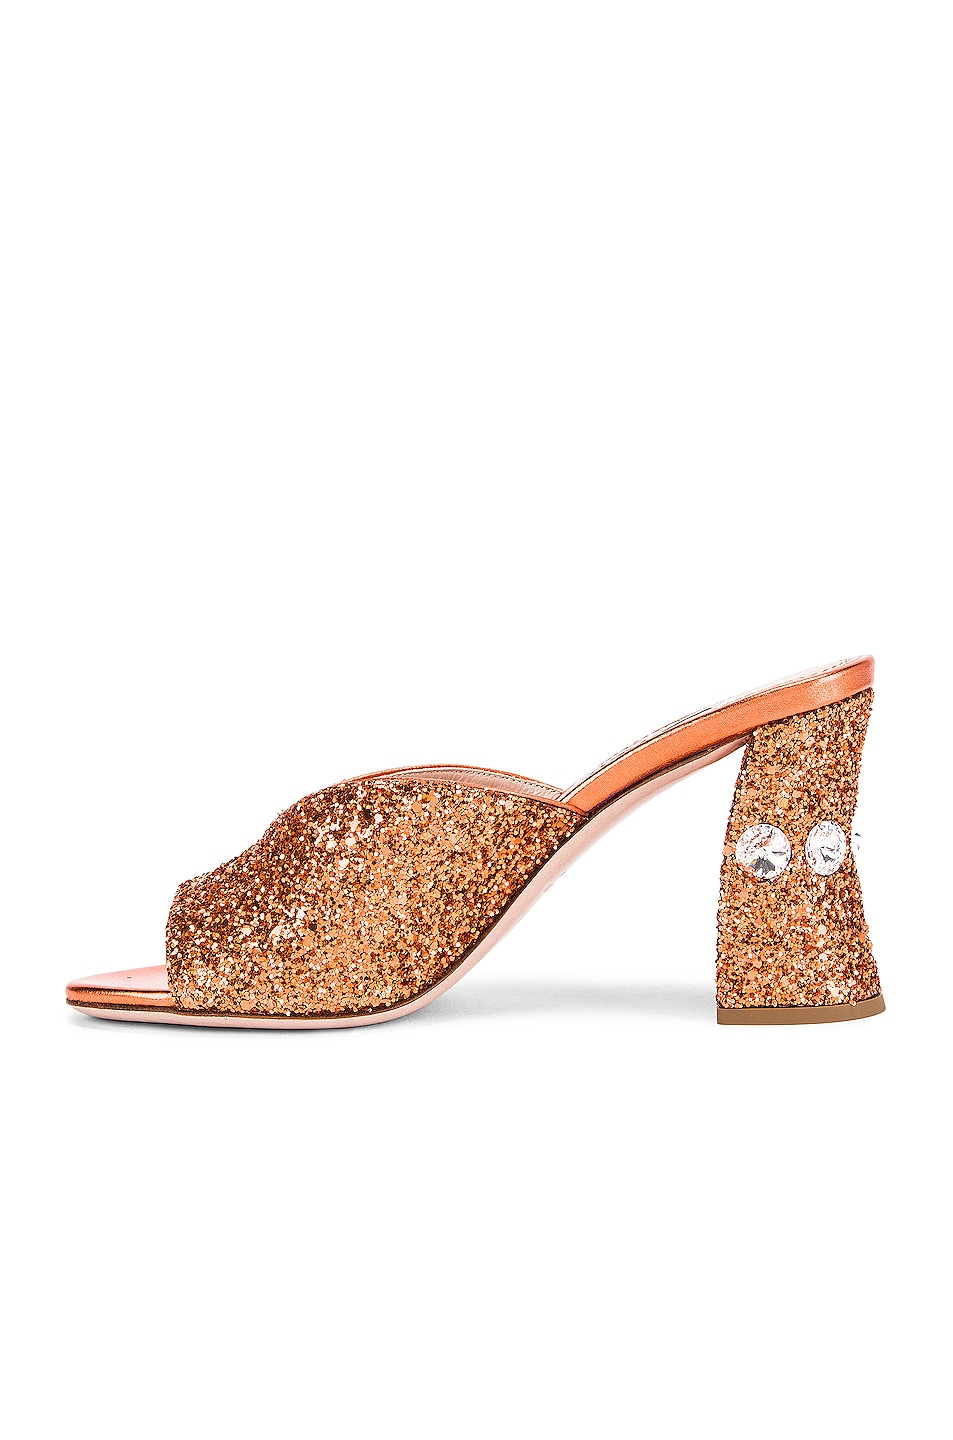 Image 5 of Miu Miu Glitter Jeweled Mules in Rame